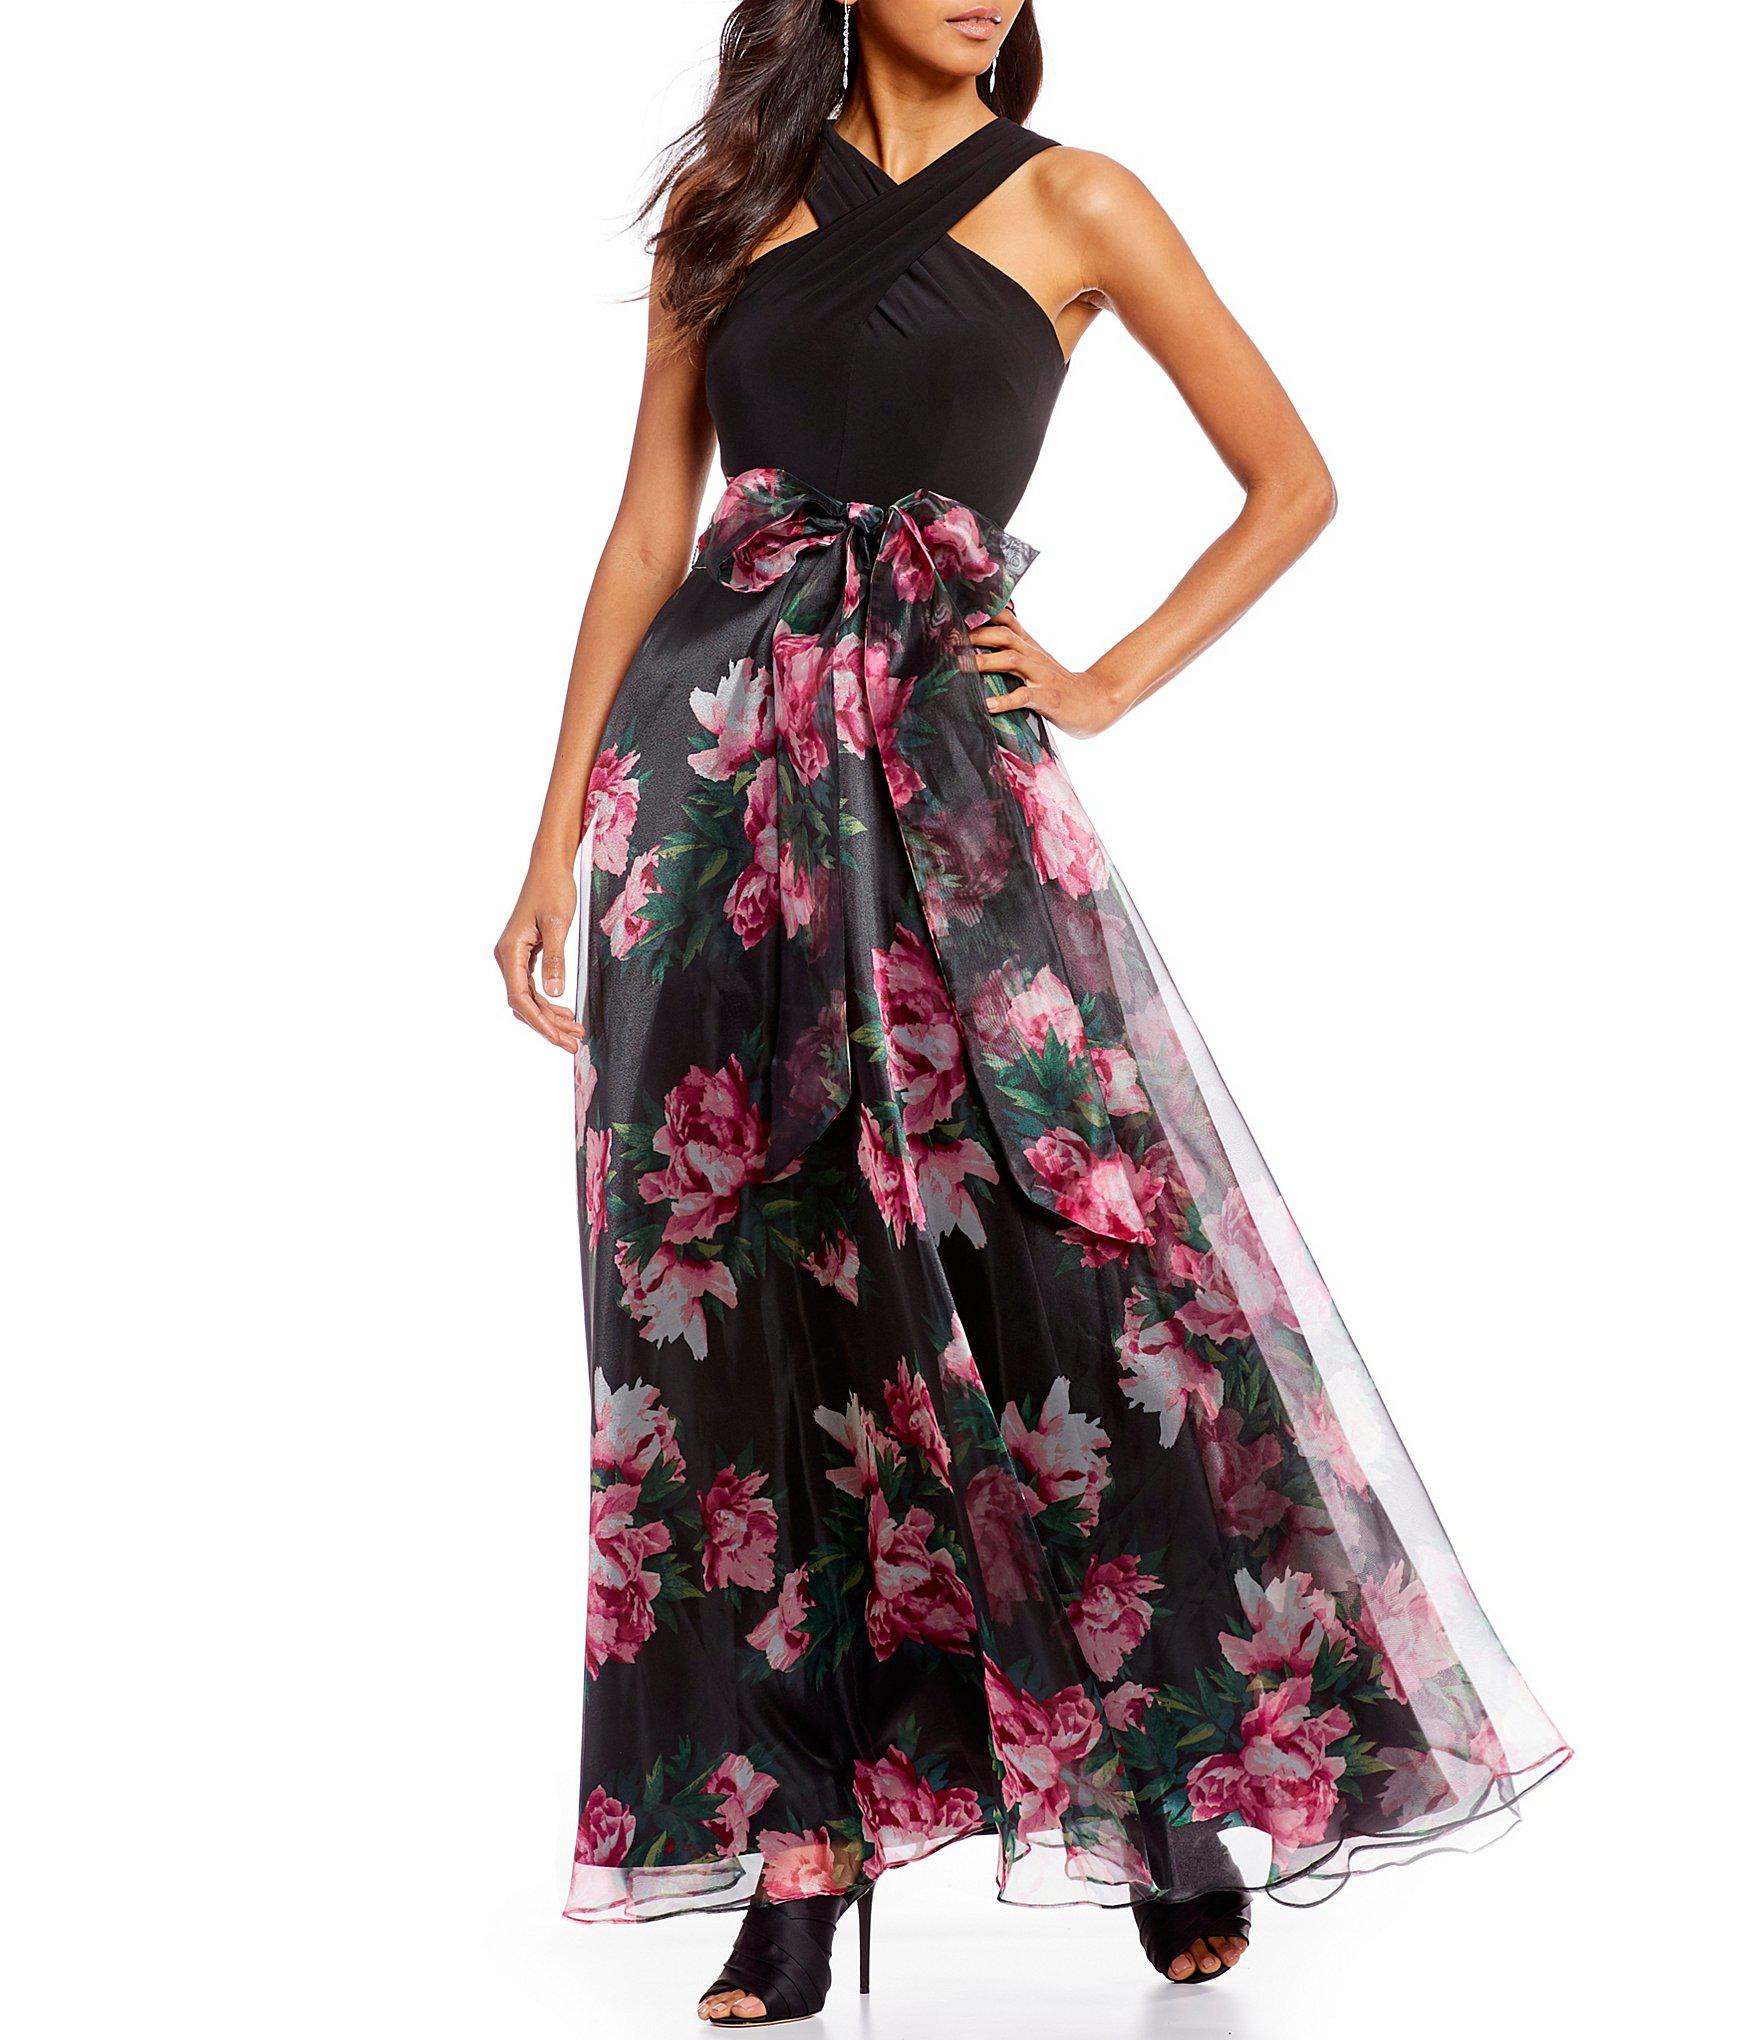 5089177dc Eliza J Twisted Floral Print Pleated Skirt Halter Neck Organza ...